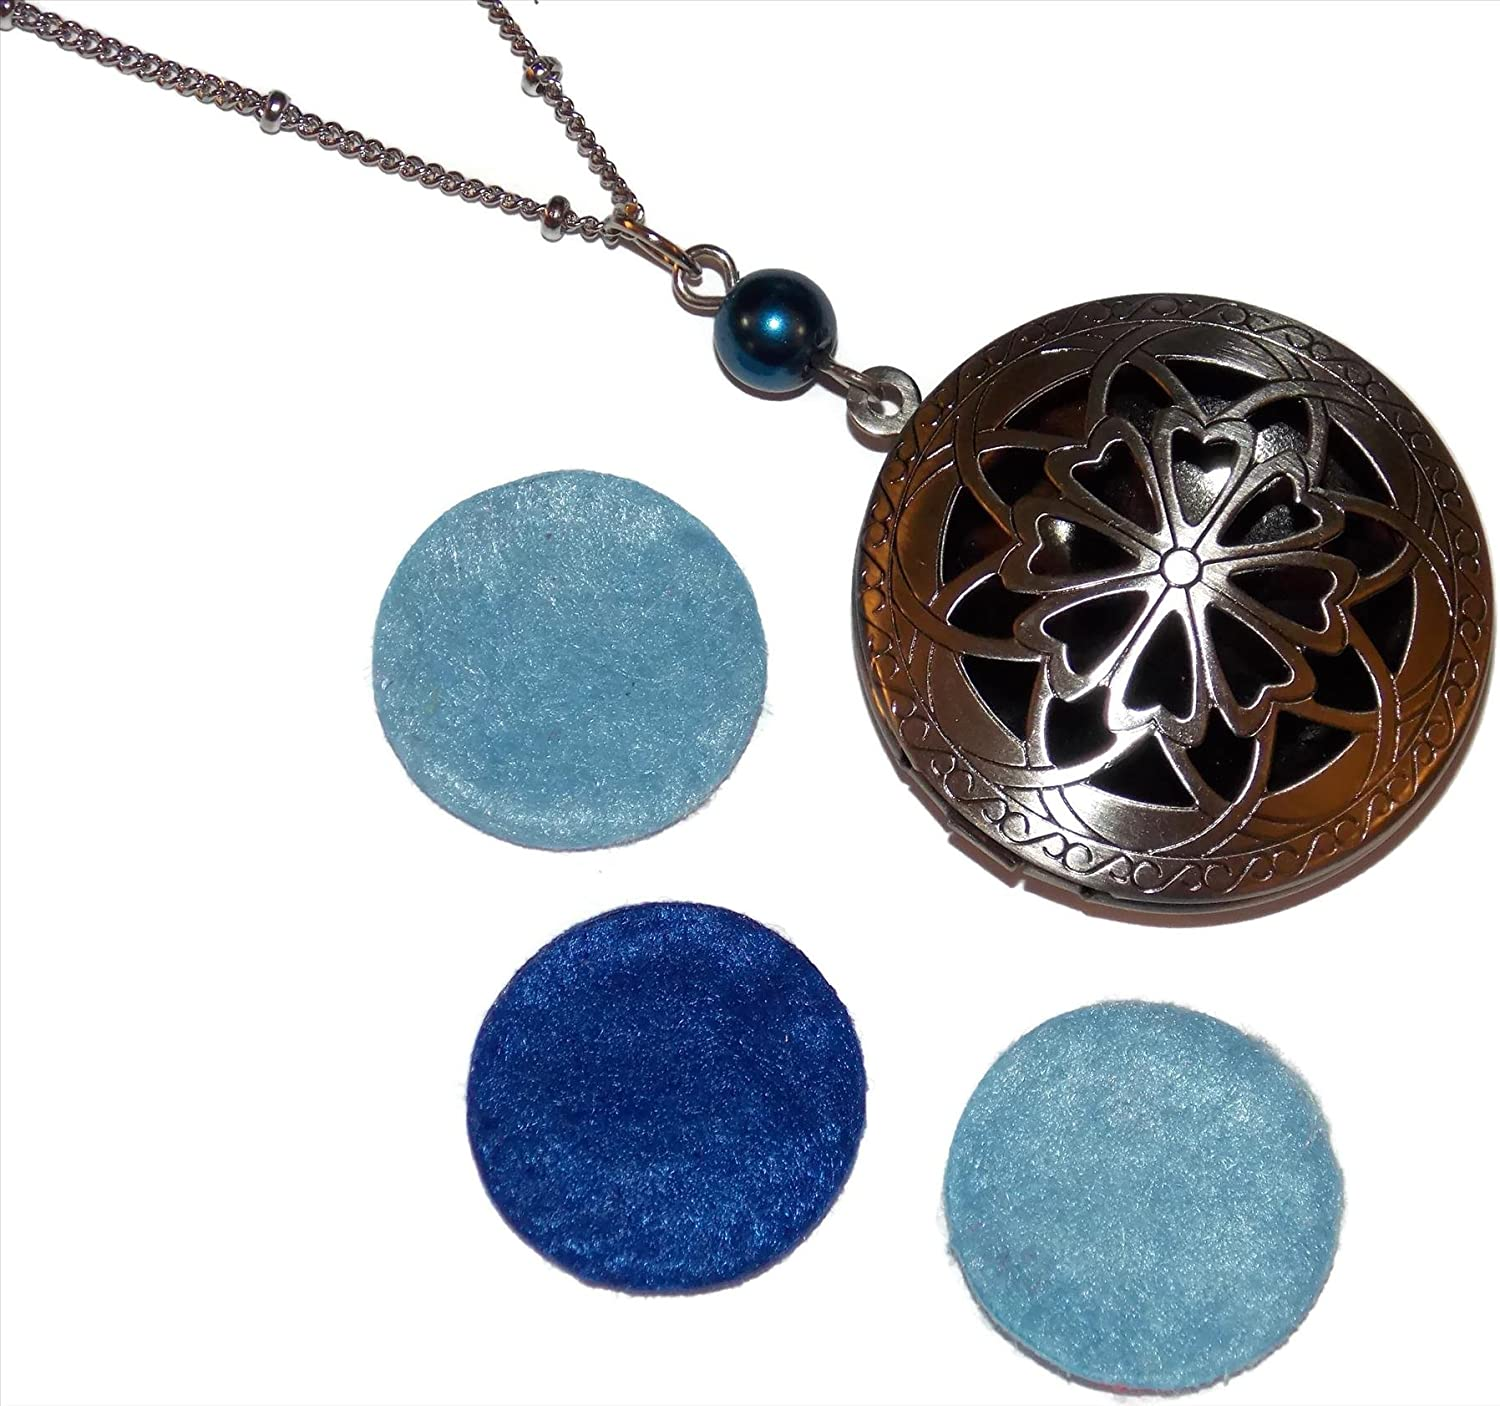 Old Max 88% OFF Ranking TOP19 School Geekery Diffuser Locket Necklace Ornate Grea Filigree